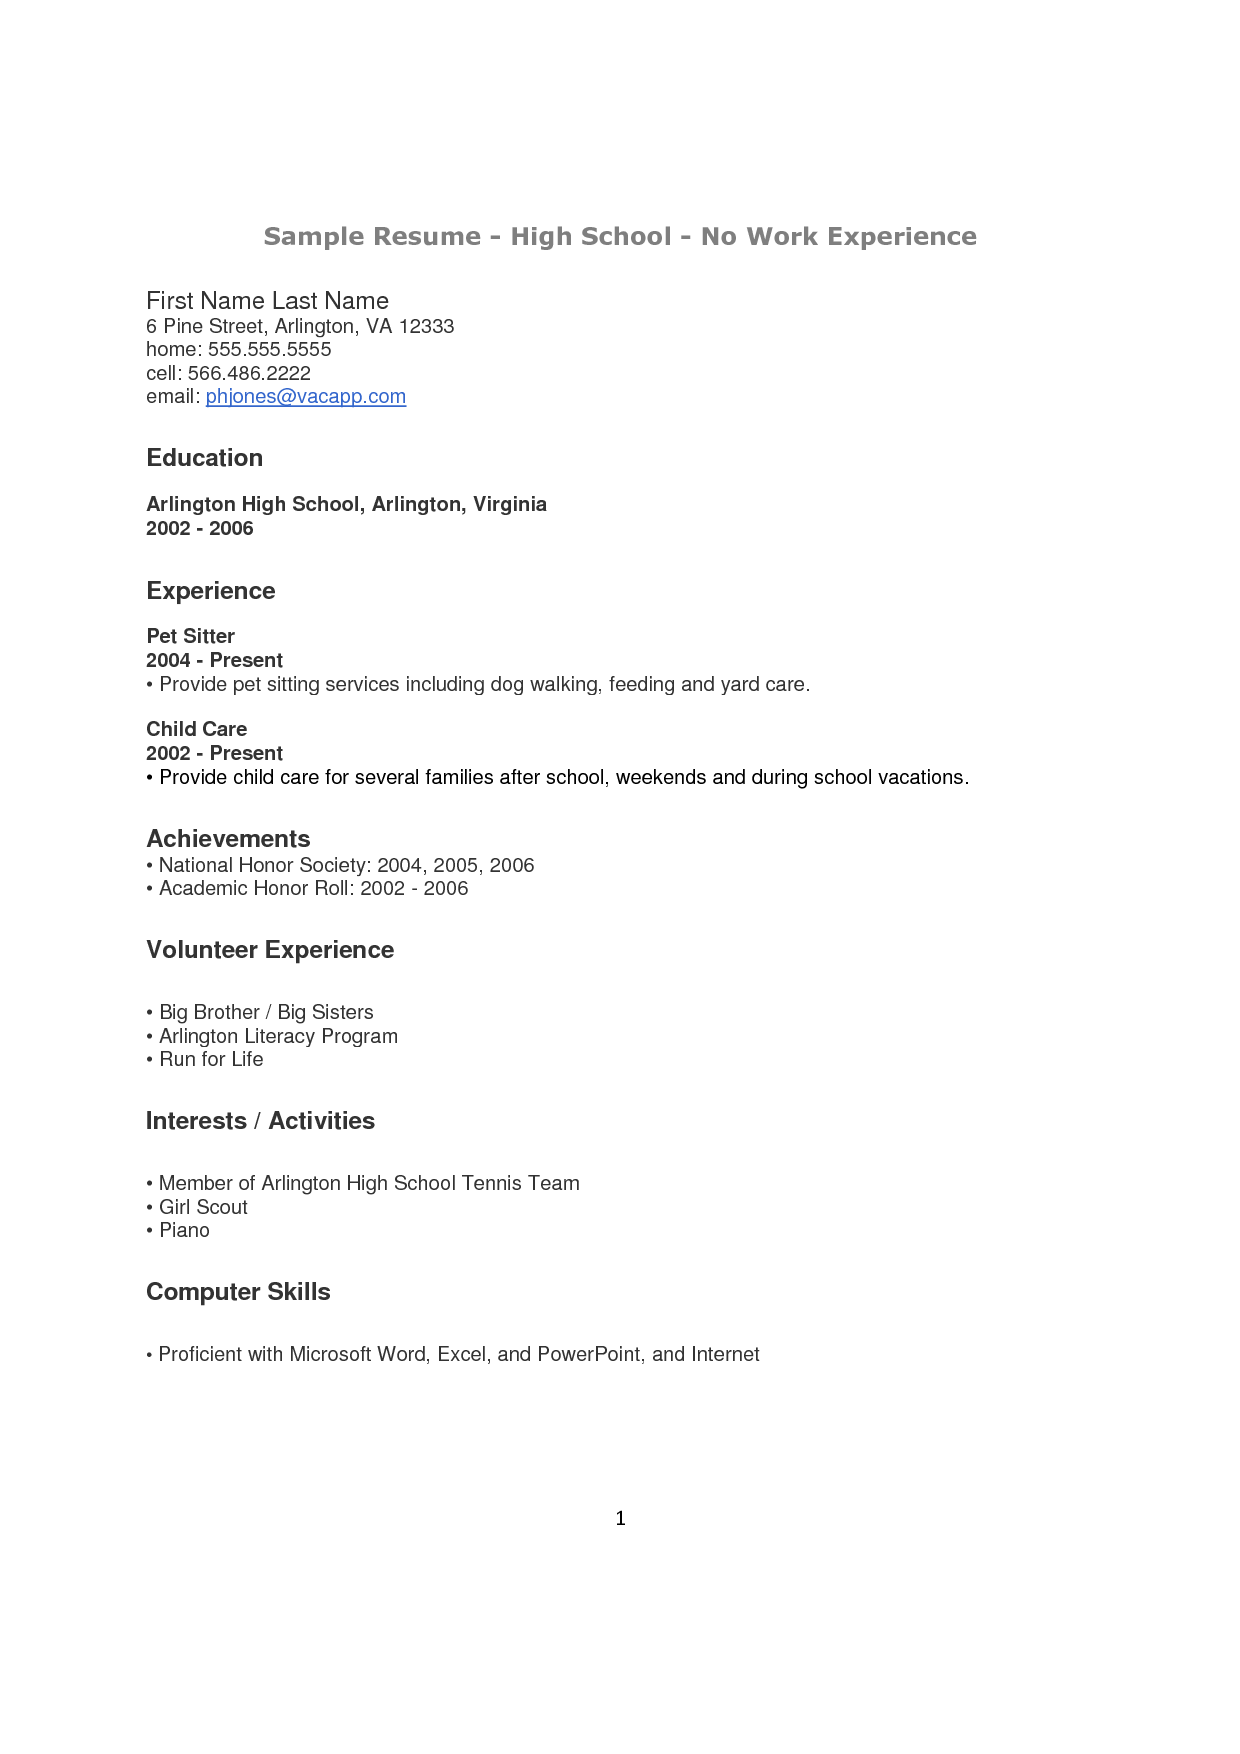 How To Make A Resume For First Job Glamorous How To Make A Resume For A Highschool Student With No Experience